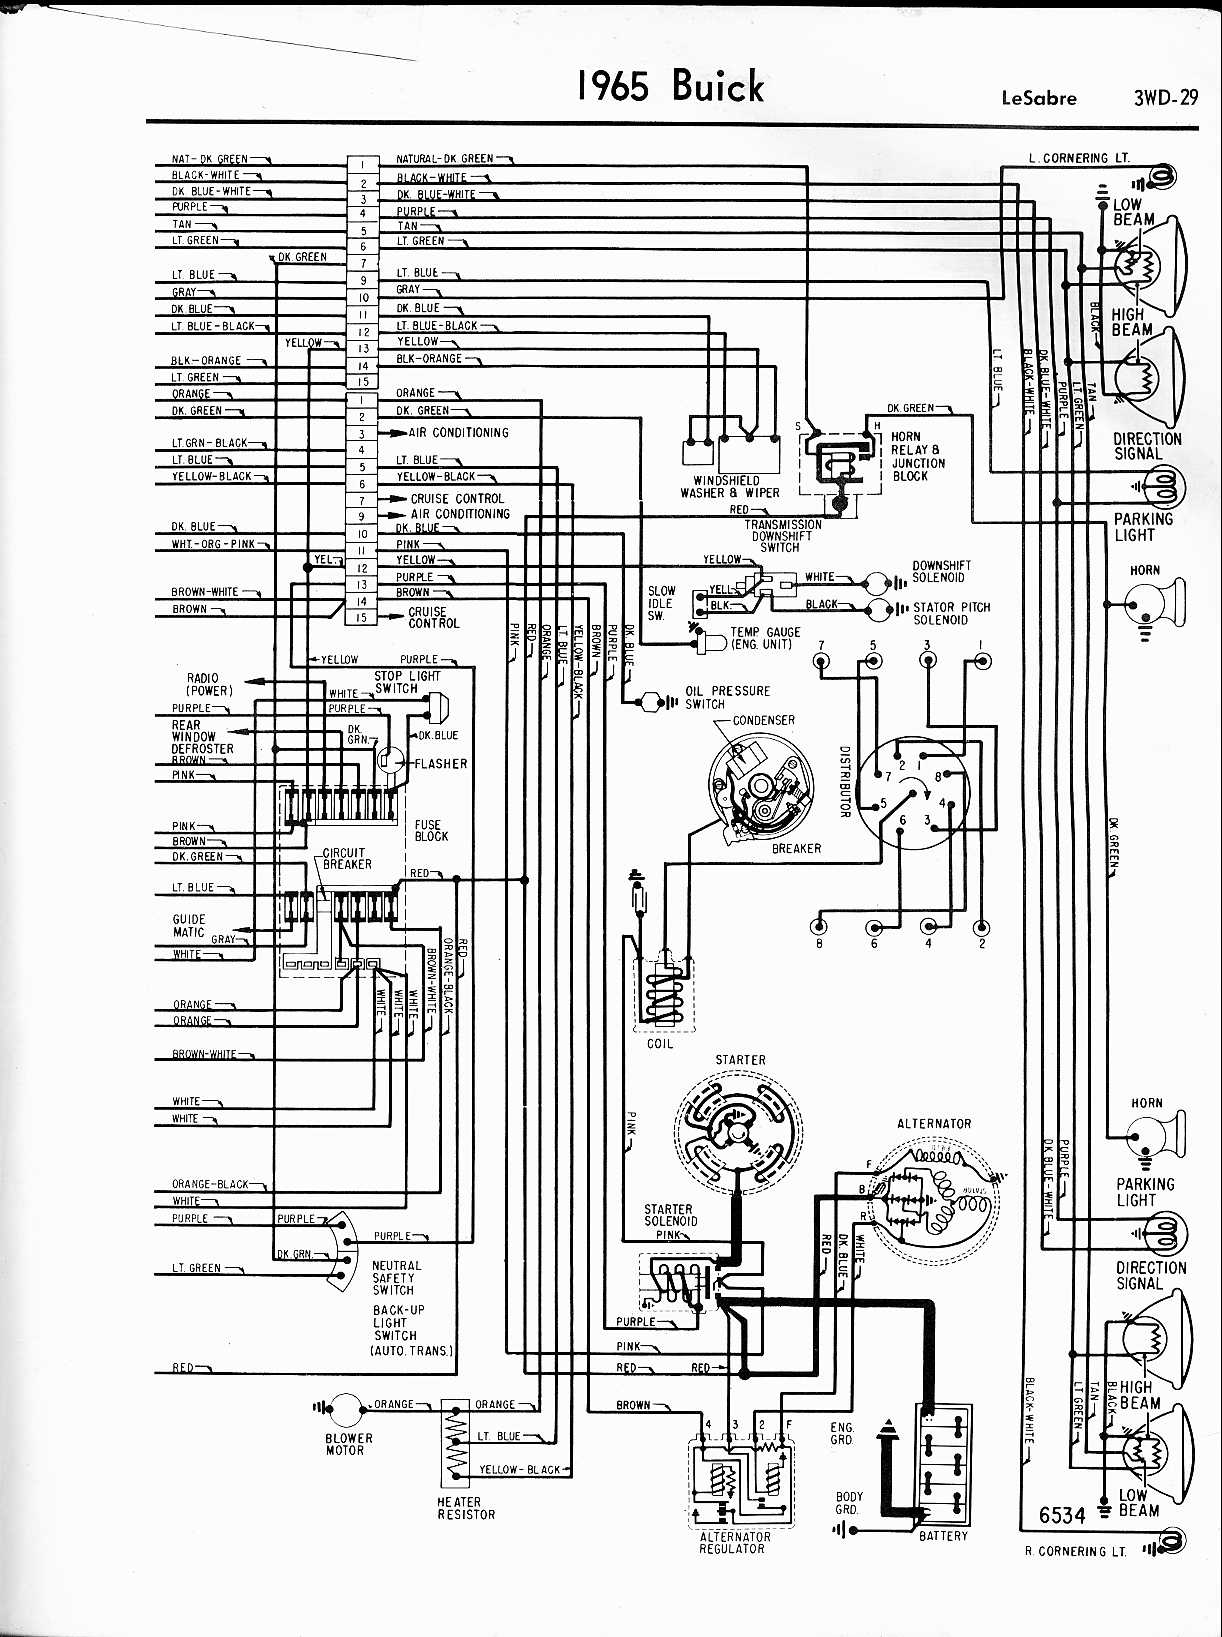 MWireBuic65_3WD 029 buick wiring diagrams 1957 1965 1997 buick lesabre radio wiring diagram at reclaimingppi.co